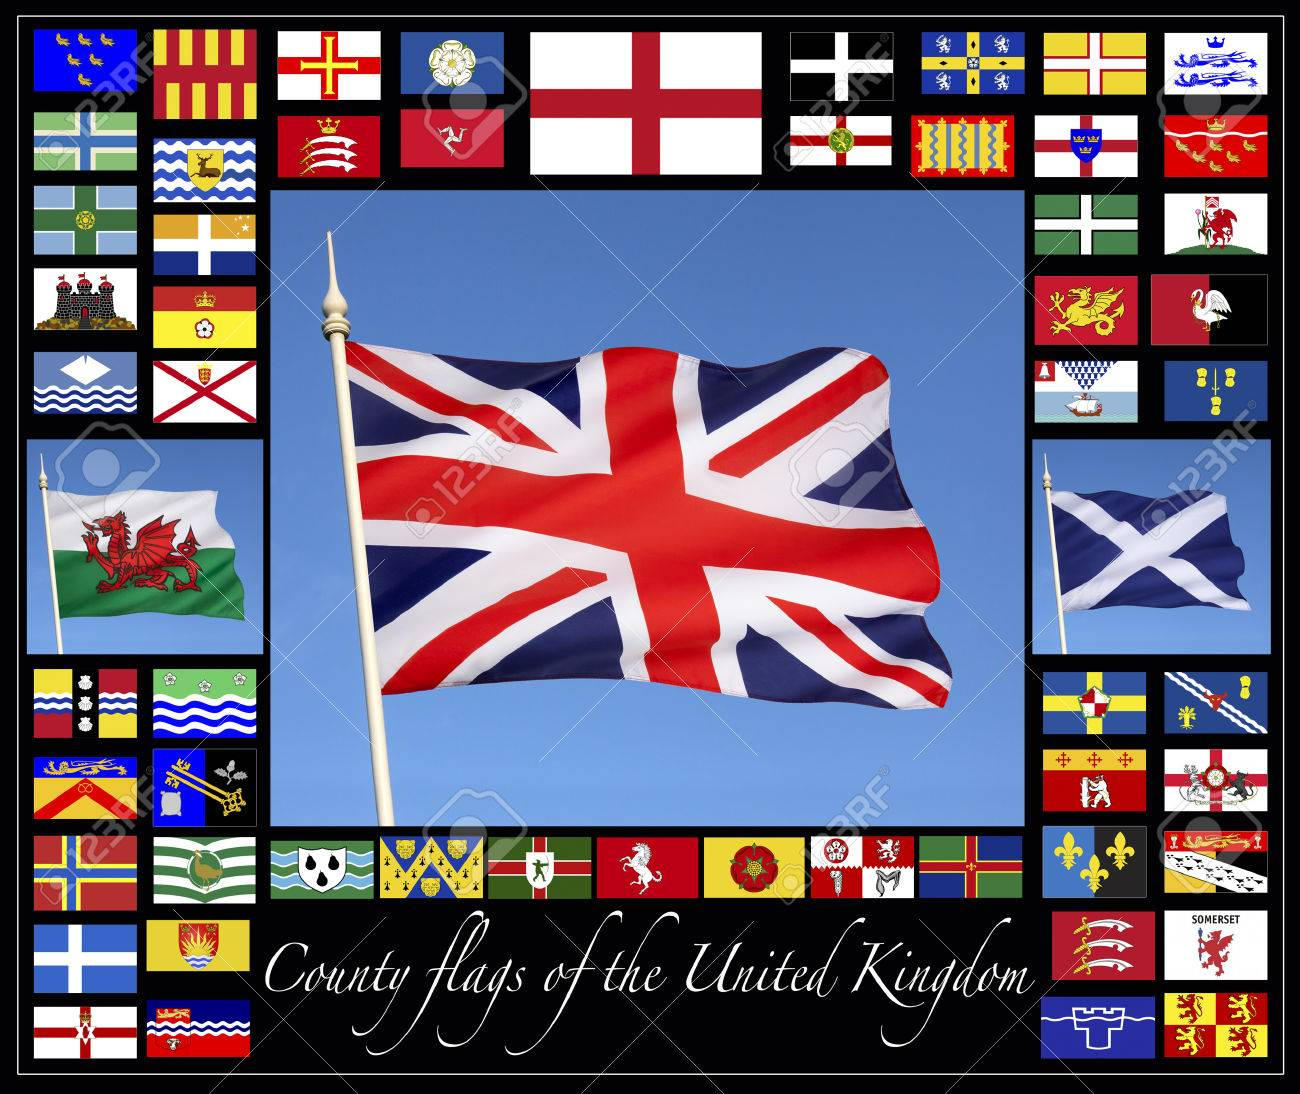 Flag gallery british county flags - County Flags Of The United Kingdom Together With The Flags Of England Scotland Wales And